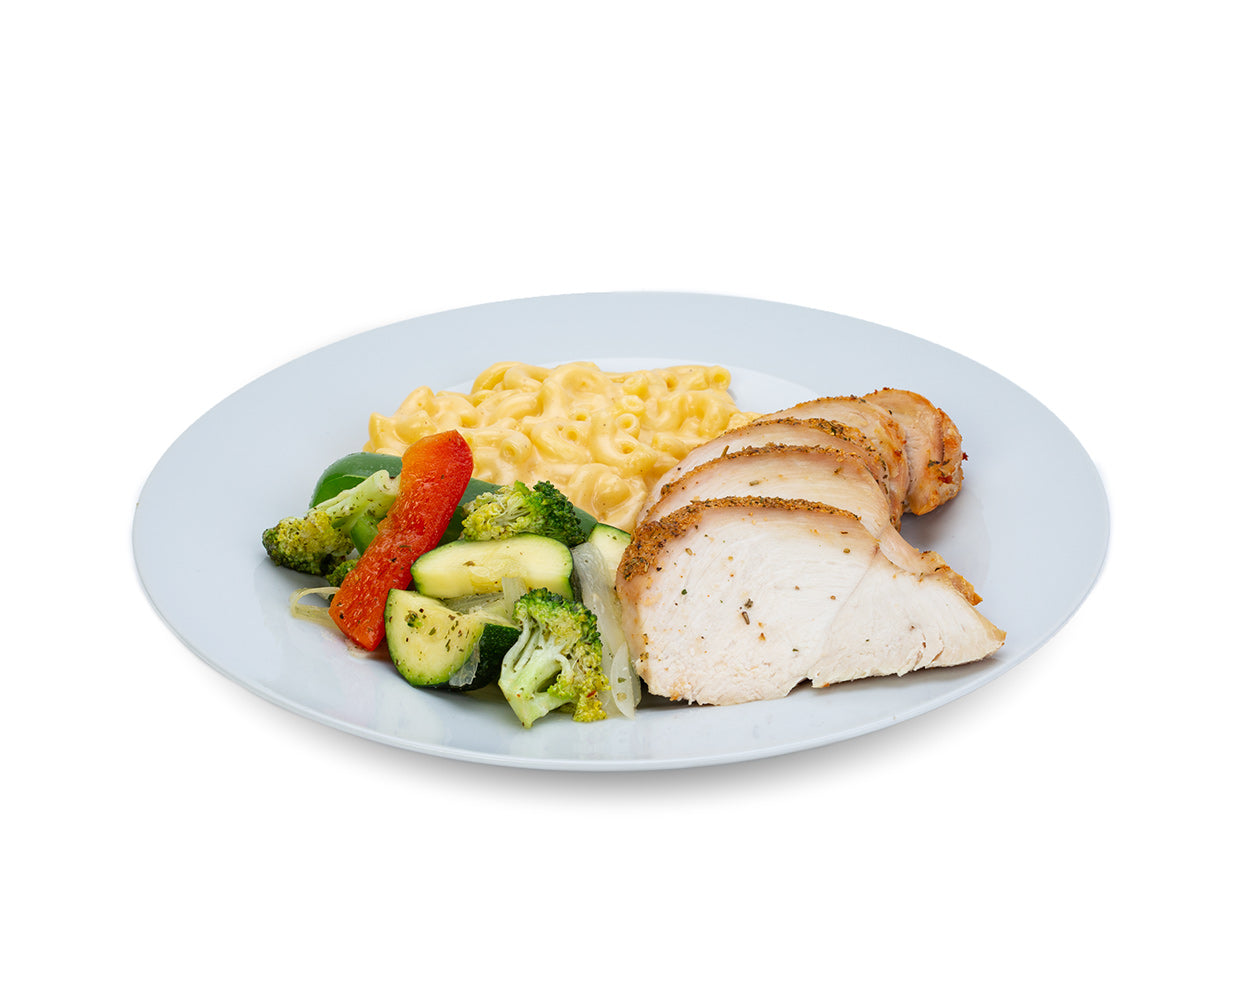 Herbed Garlic Roasted Chicken Breast